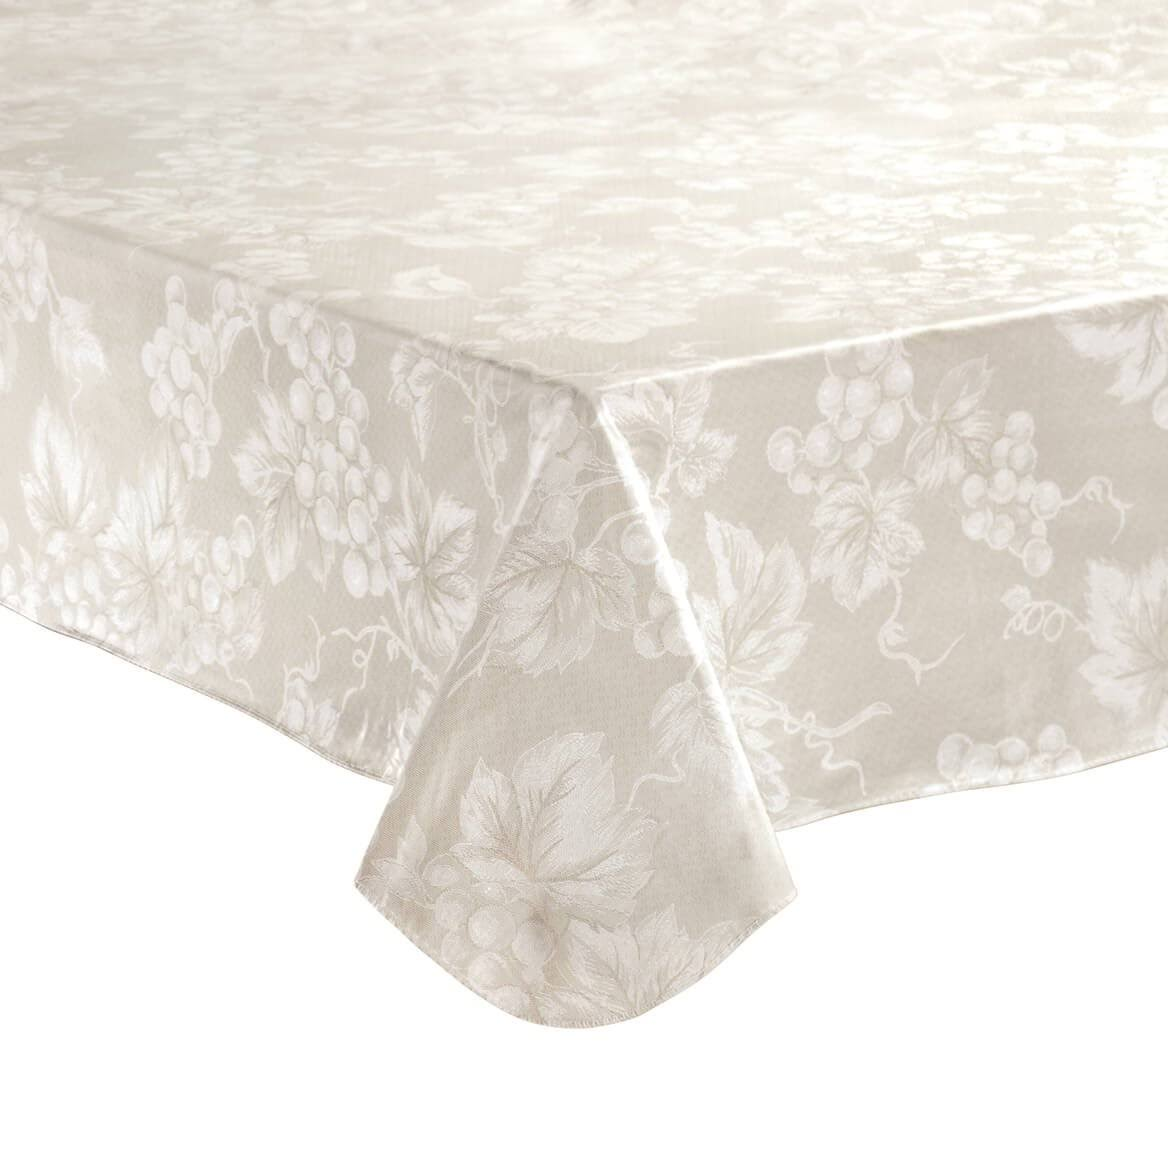 Lintex Grapevine Vinyl Tablecloth Ivory